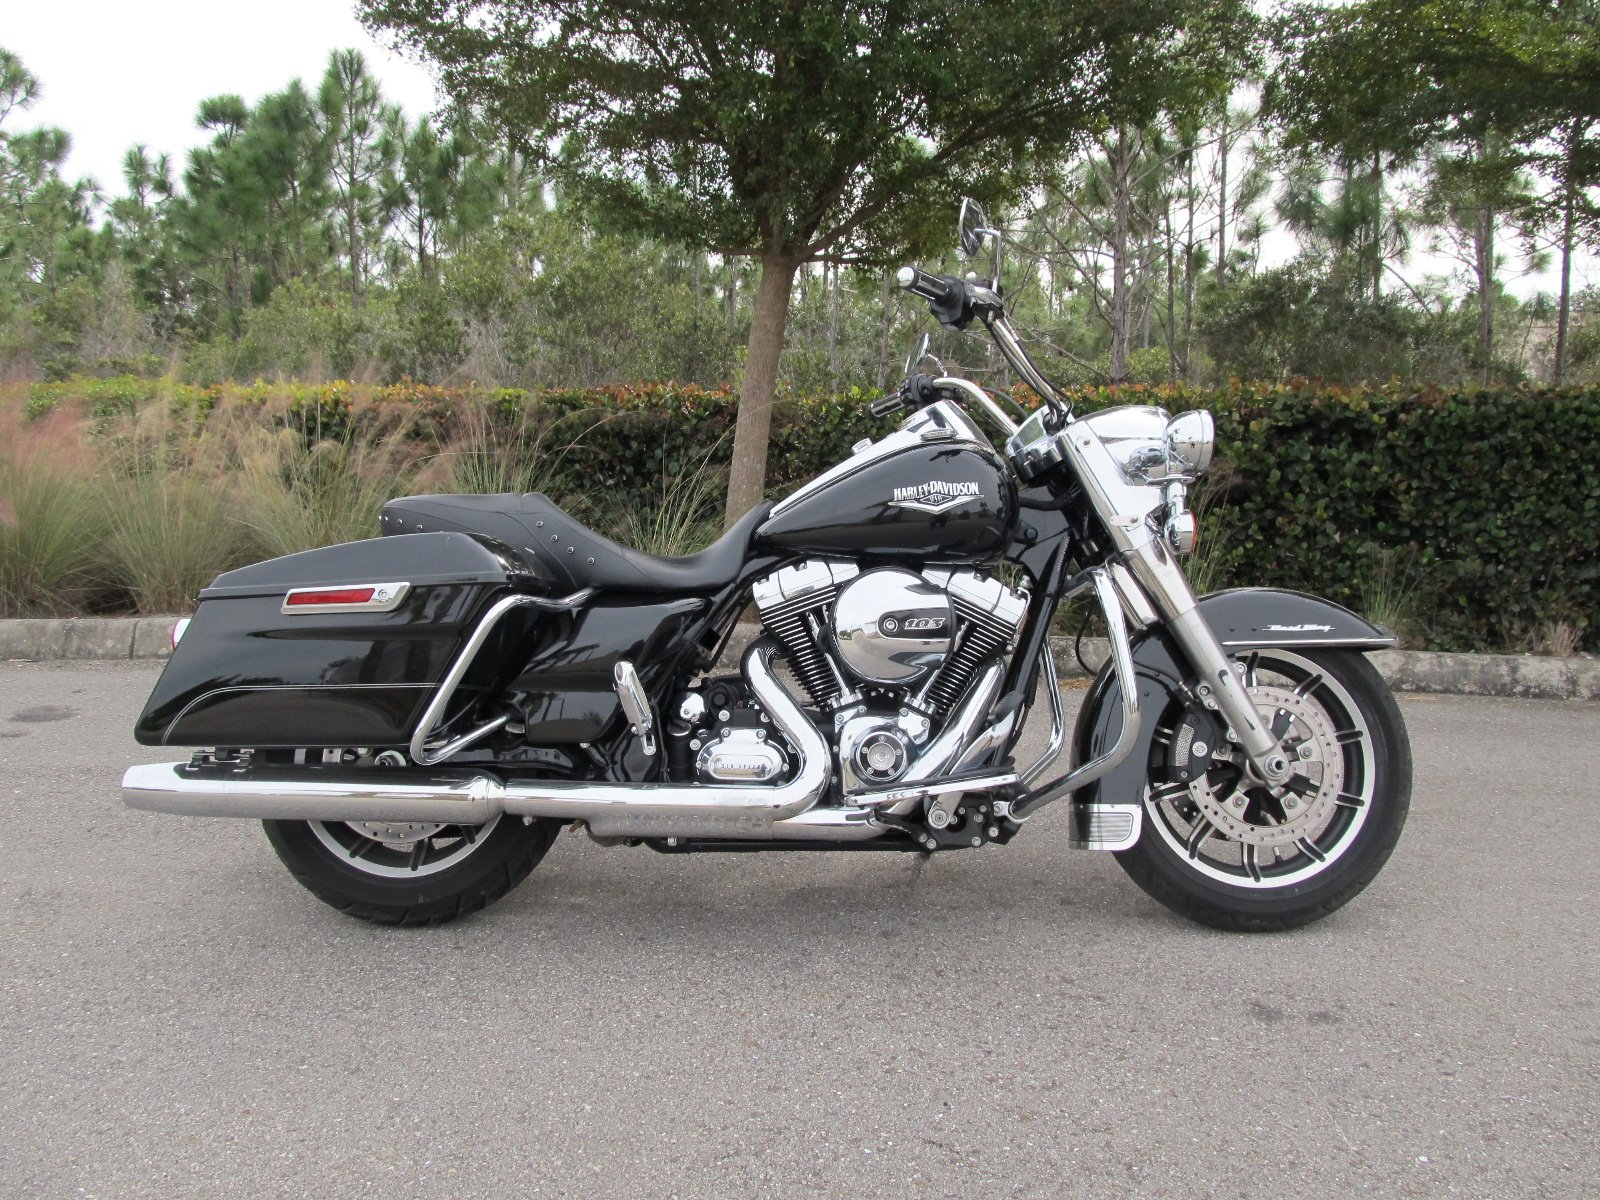 Pre-Owned 2014 Harley-Davidson Road King FLHR